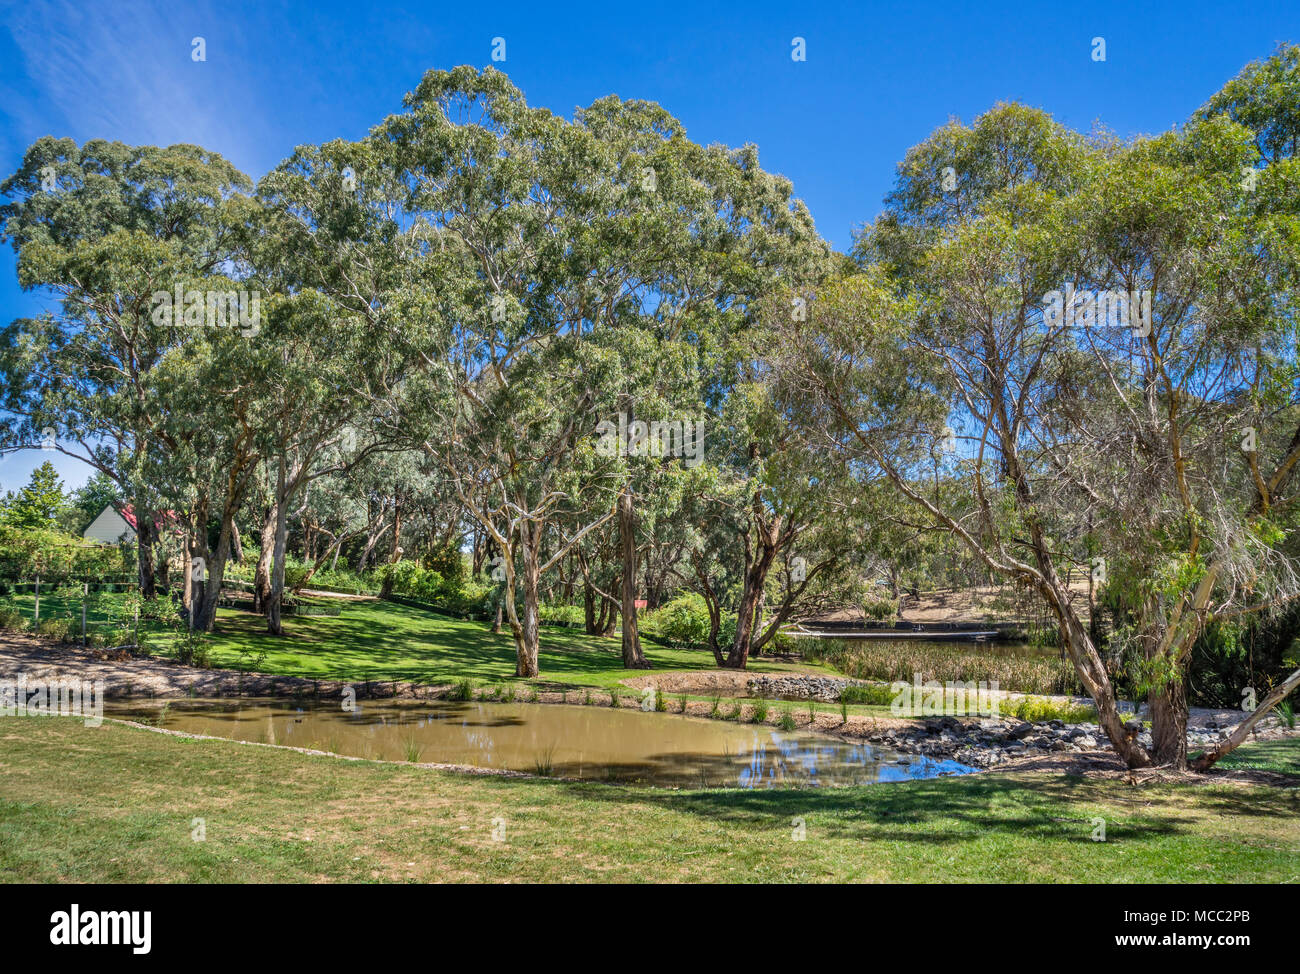 Eucalypt Lawn at Orange Botanic Gardens, a grassy wooded area with many remnant Eucalypts including Yellow Box and Apple Box, Orane, Central West New  - Stock Image